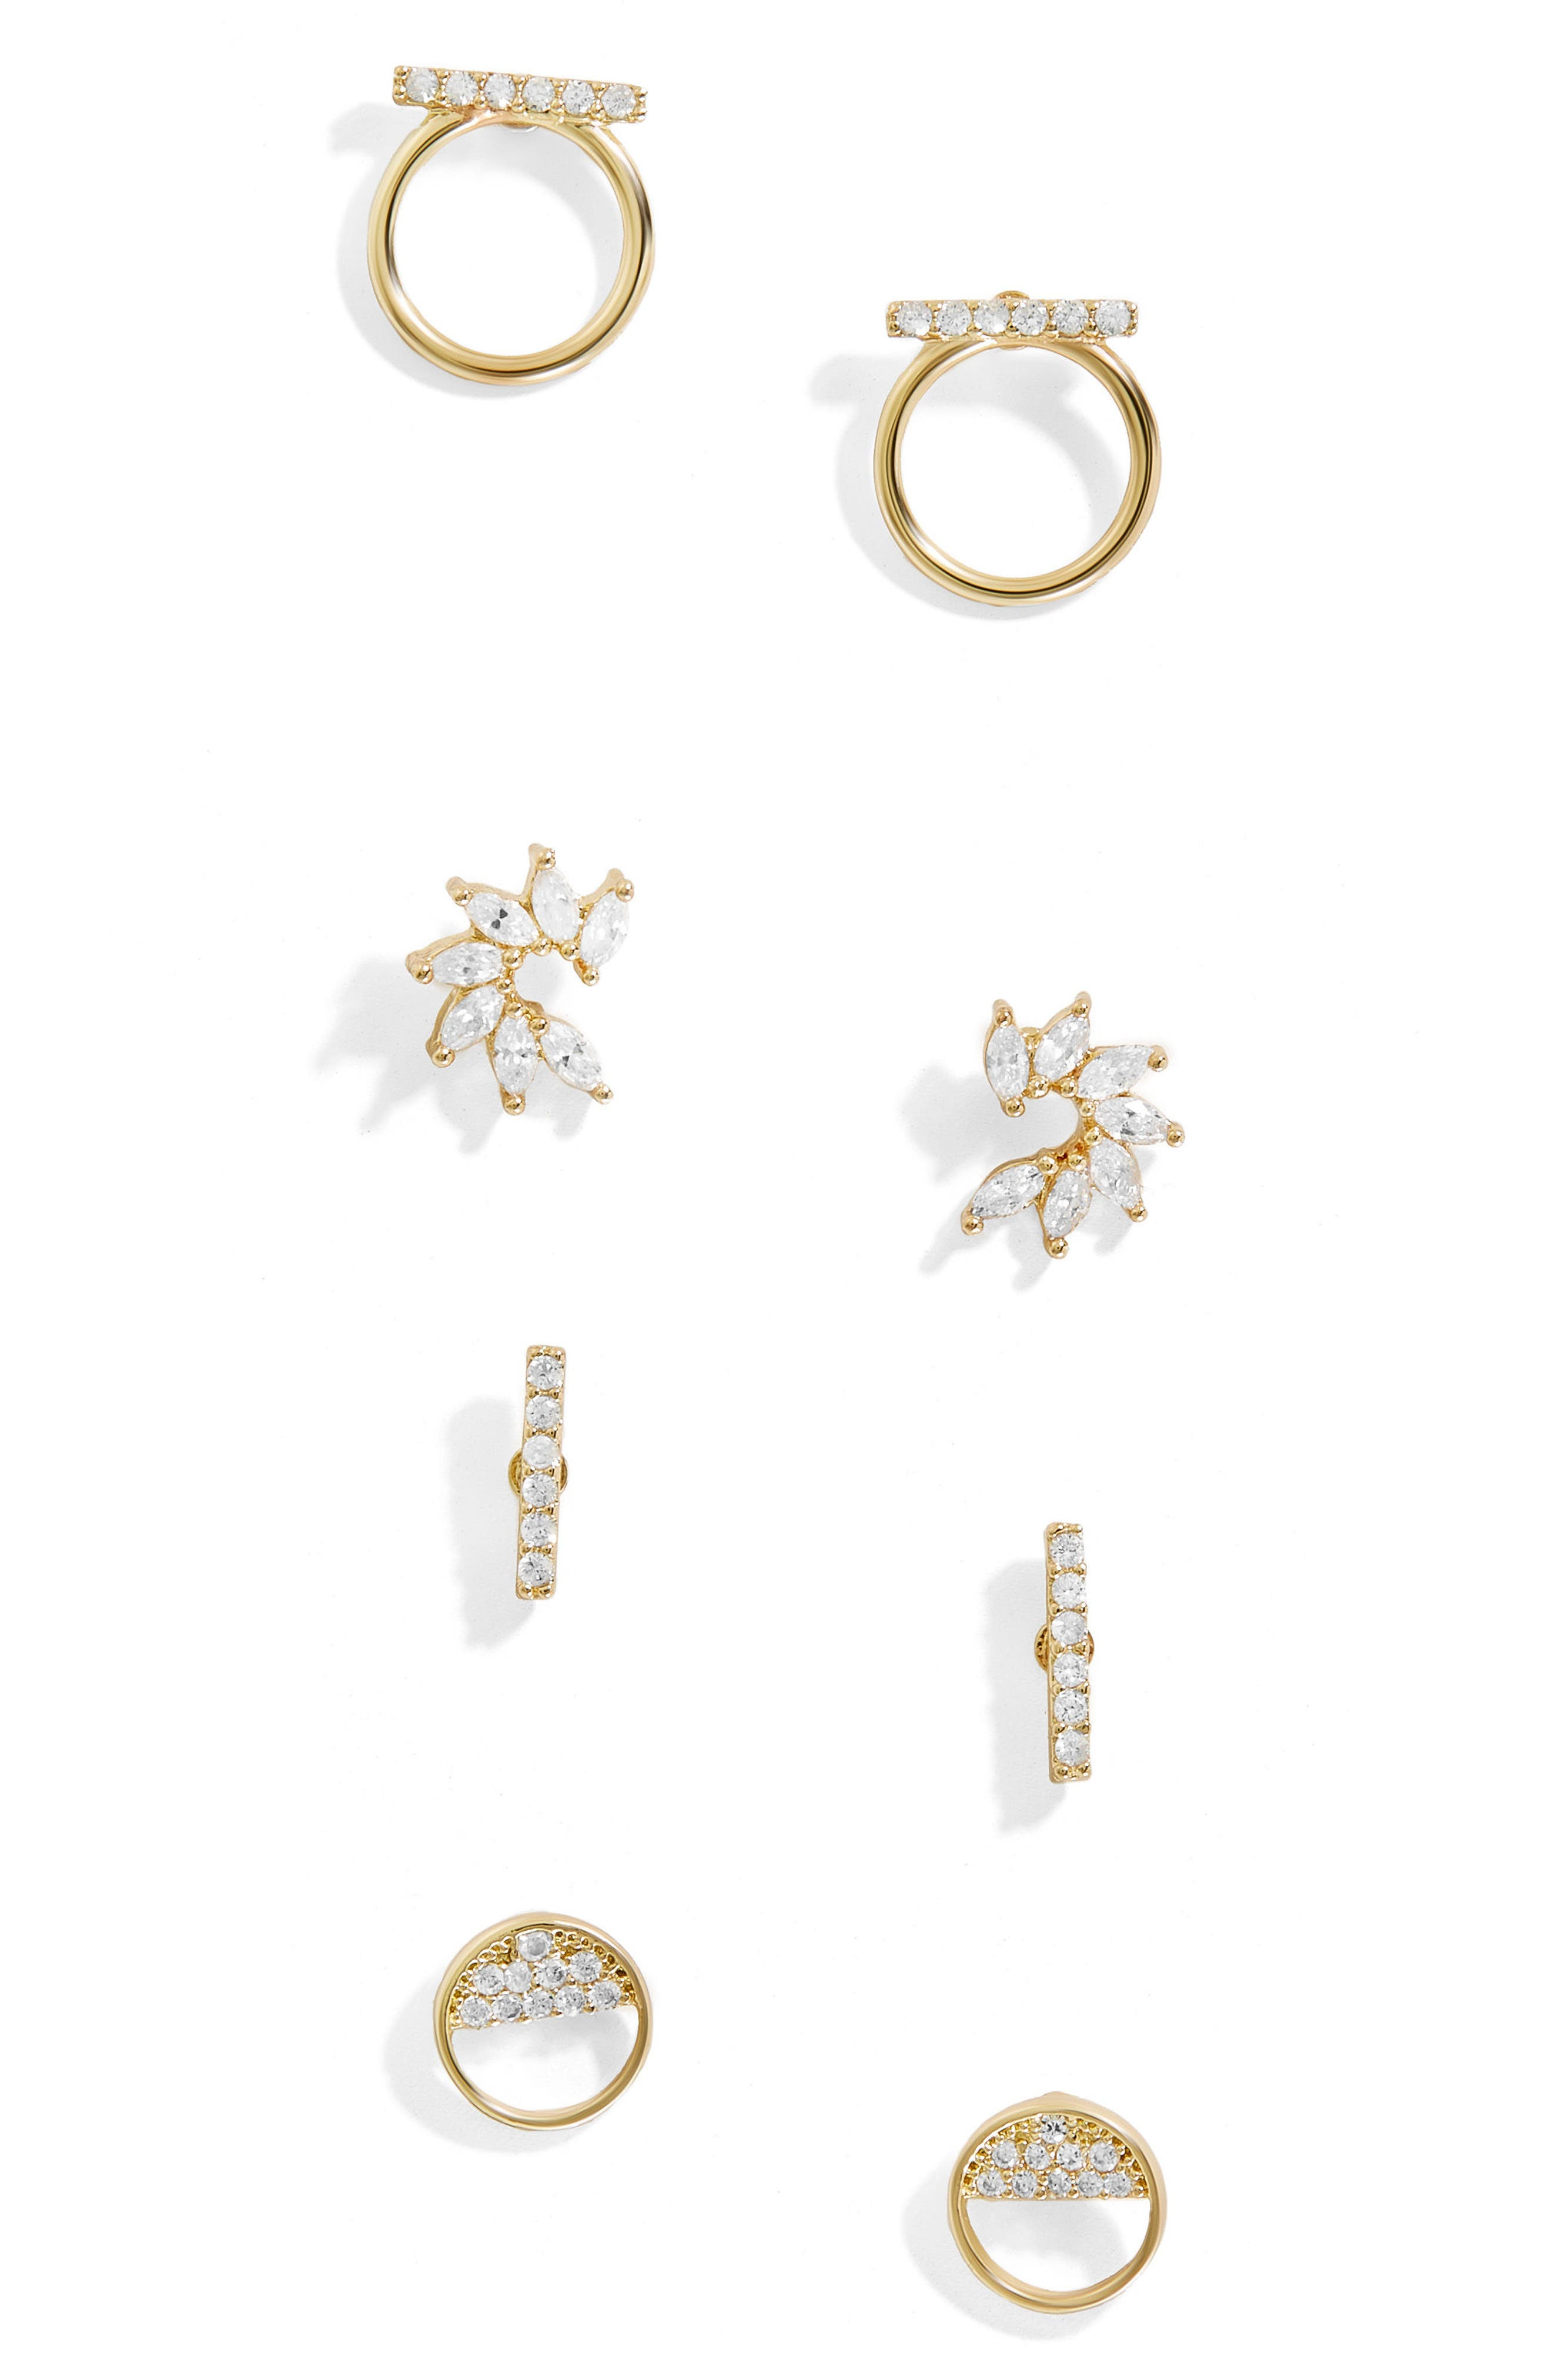 Delicate Set of 4 Stud Earrings,                         Main,                         color, Gold